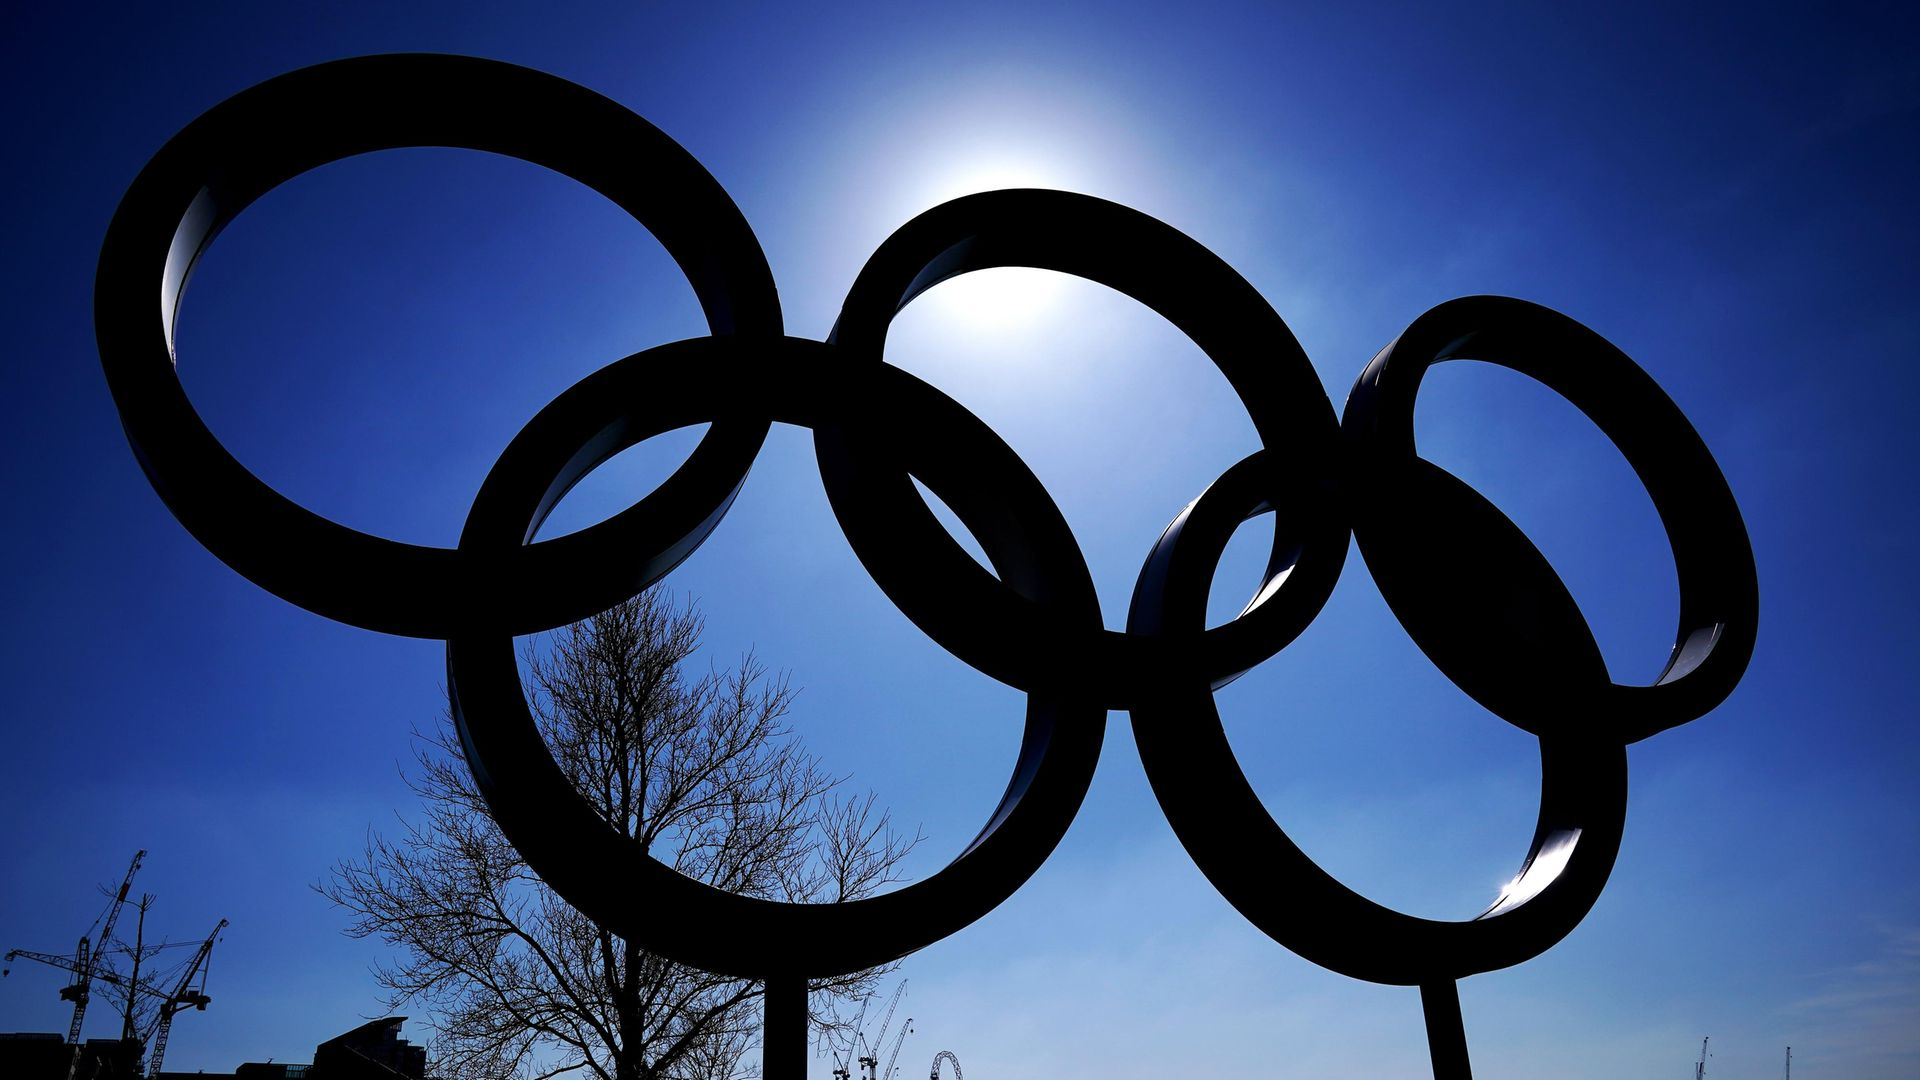 The Olympic rings near Queen Elizabeth Olympic Park in London (question four) - Credit: PA